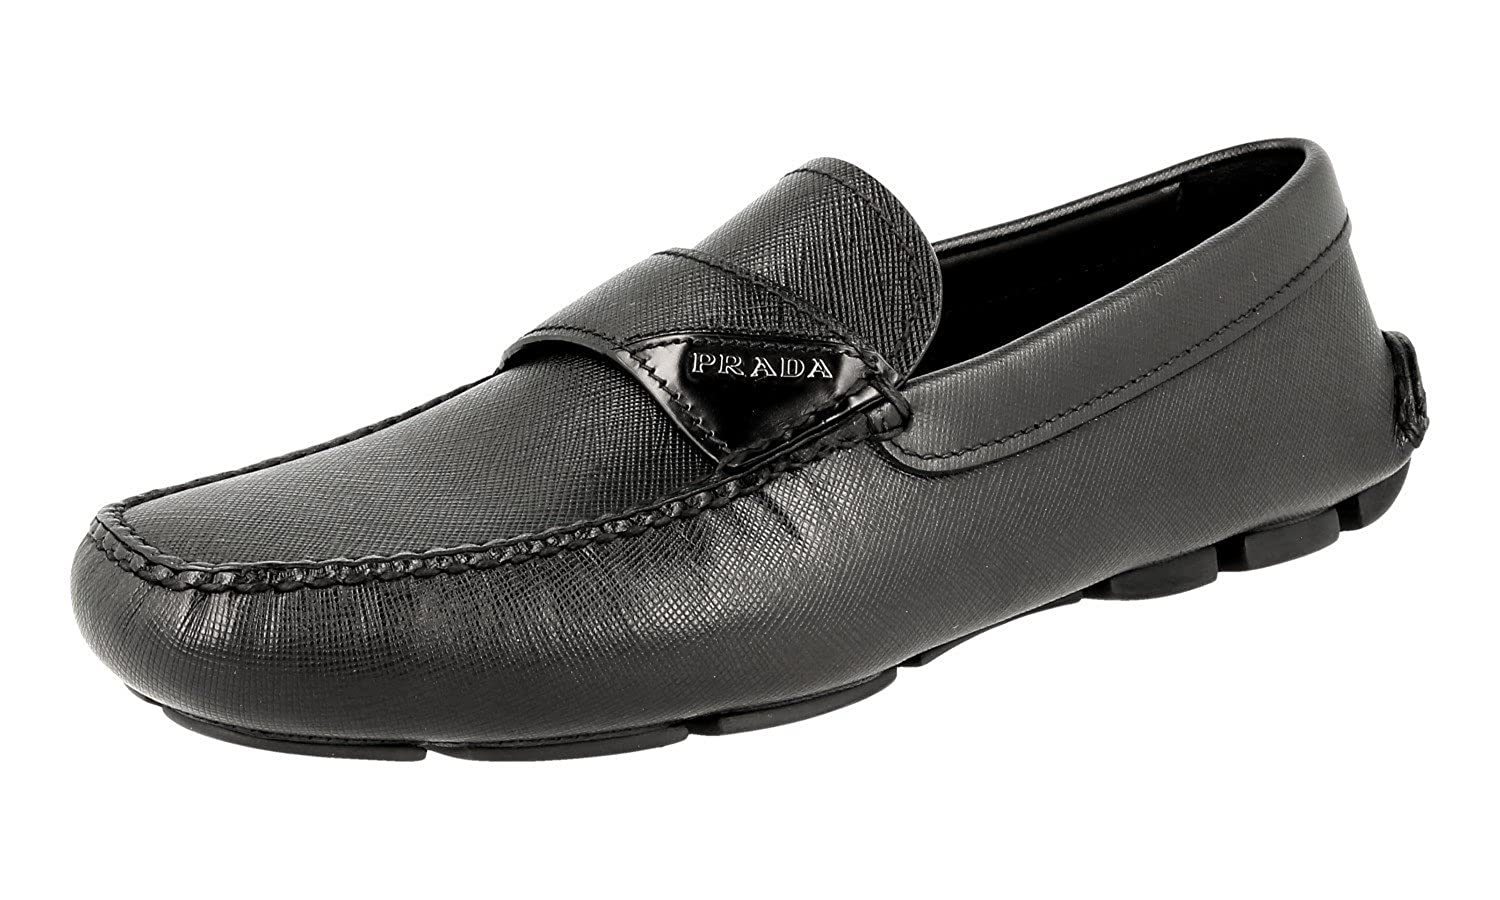 Men's 2DD125 MGV F0002 Saffiano Leather Loafers